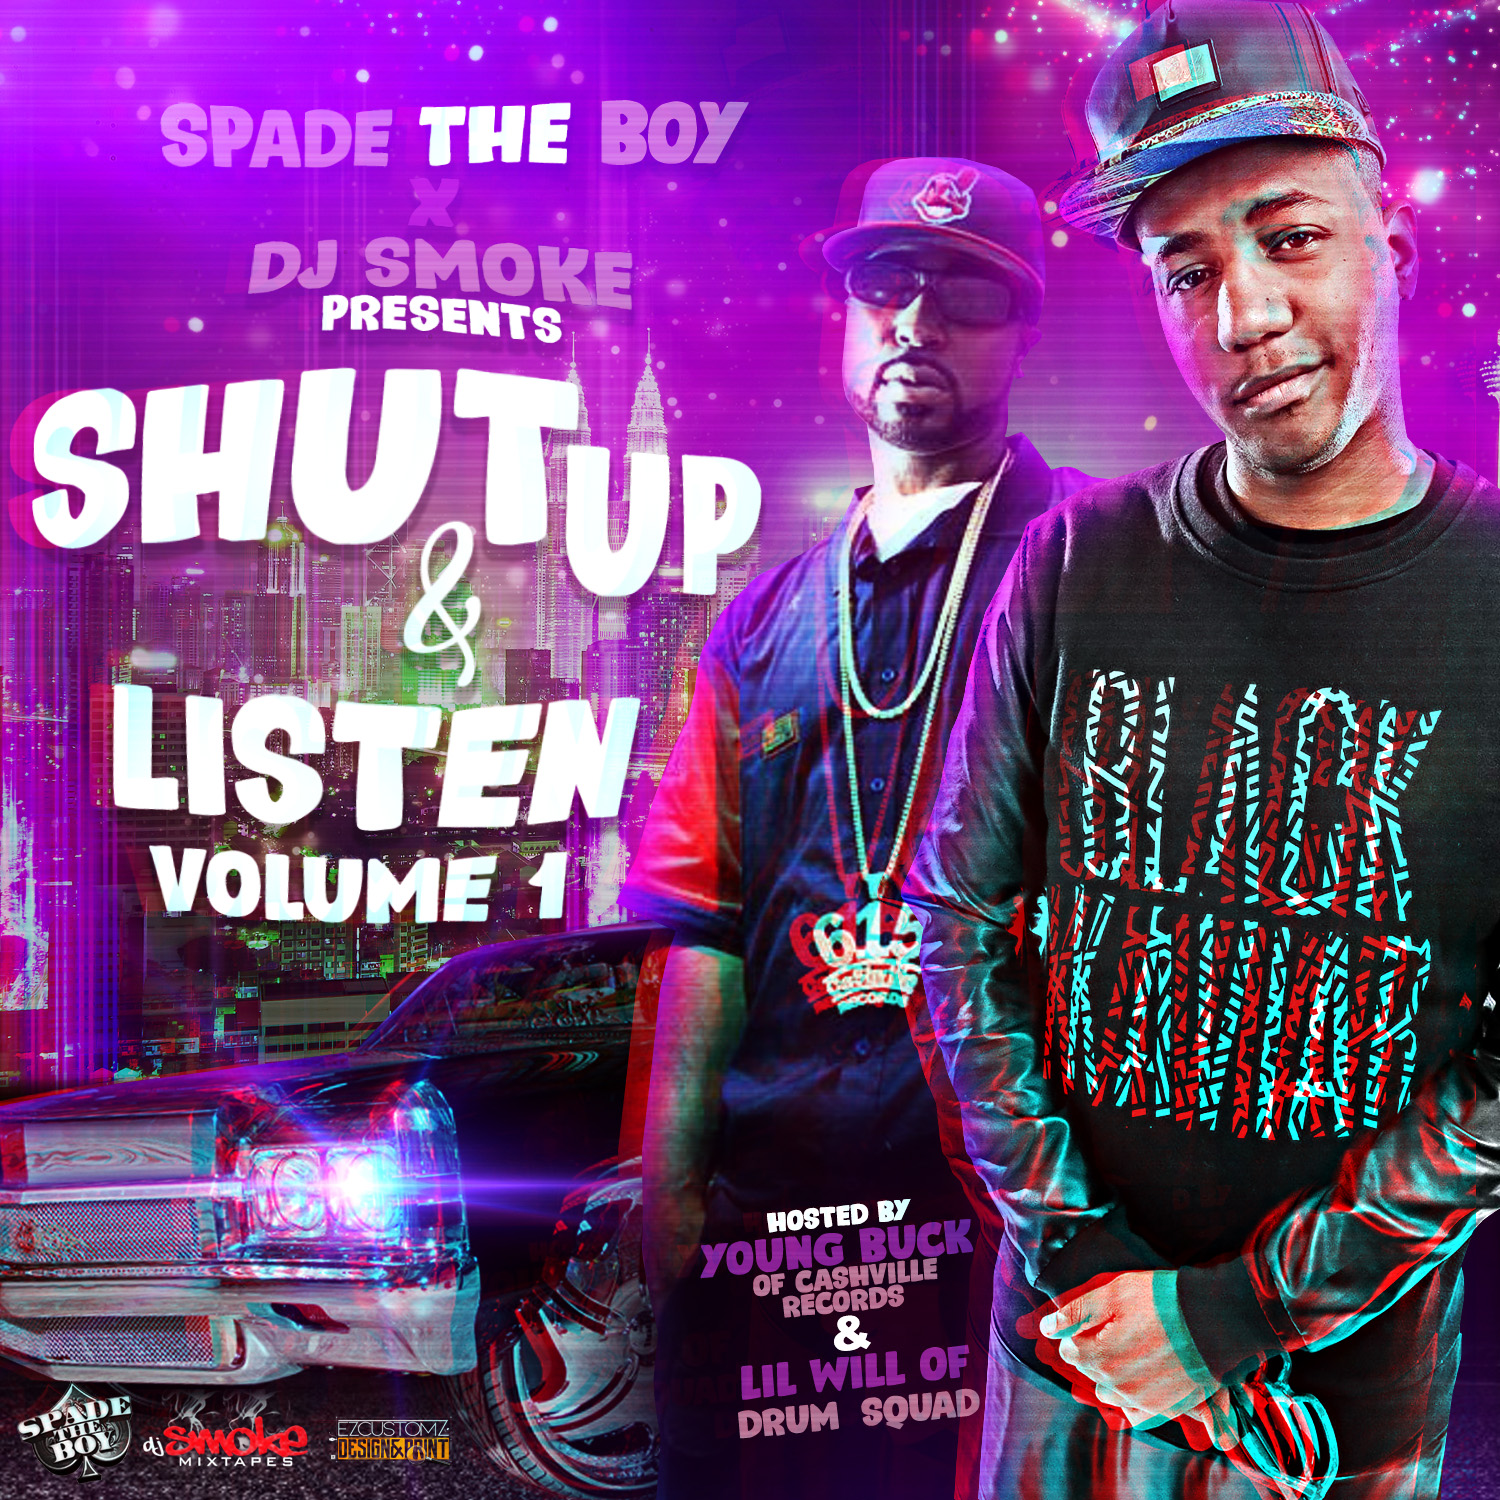 Dj Smoke Presents - Shut Up & Listen Vol. 1